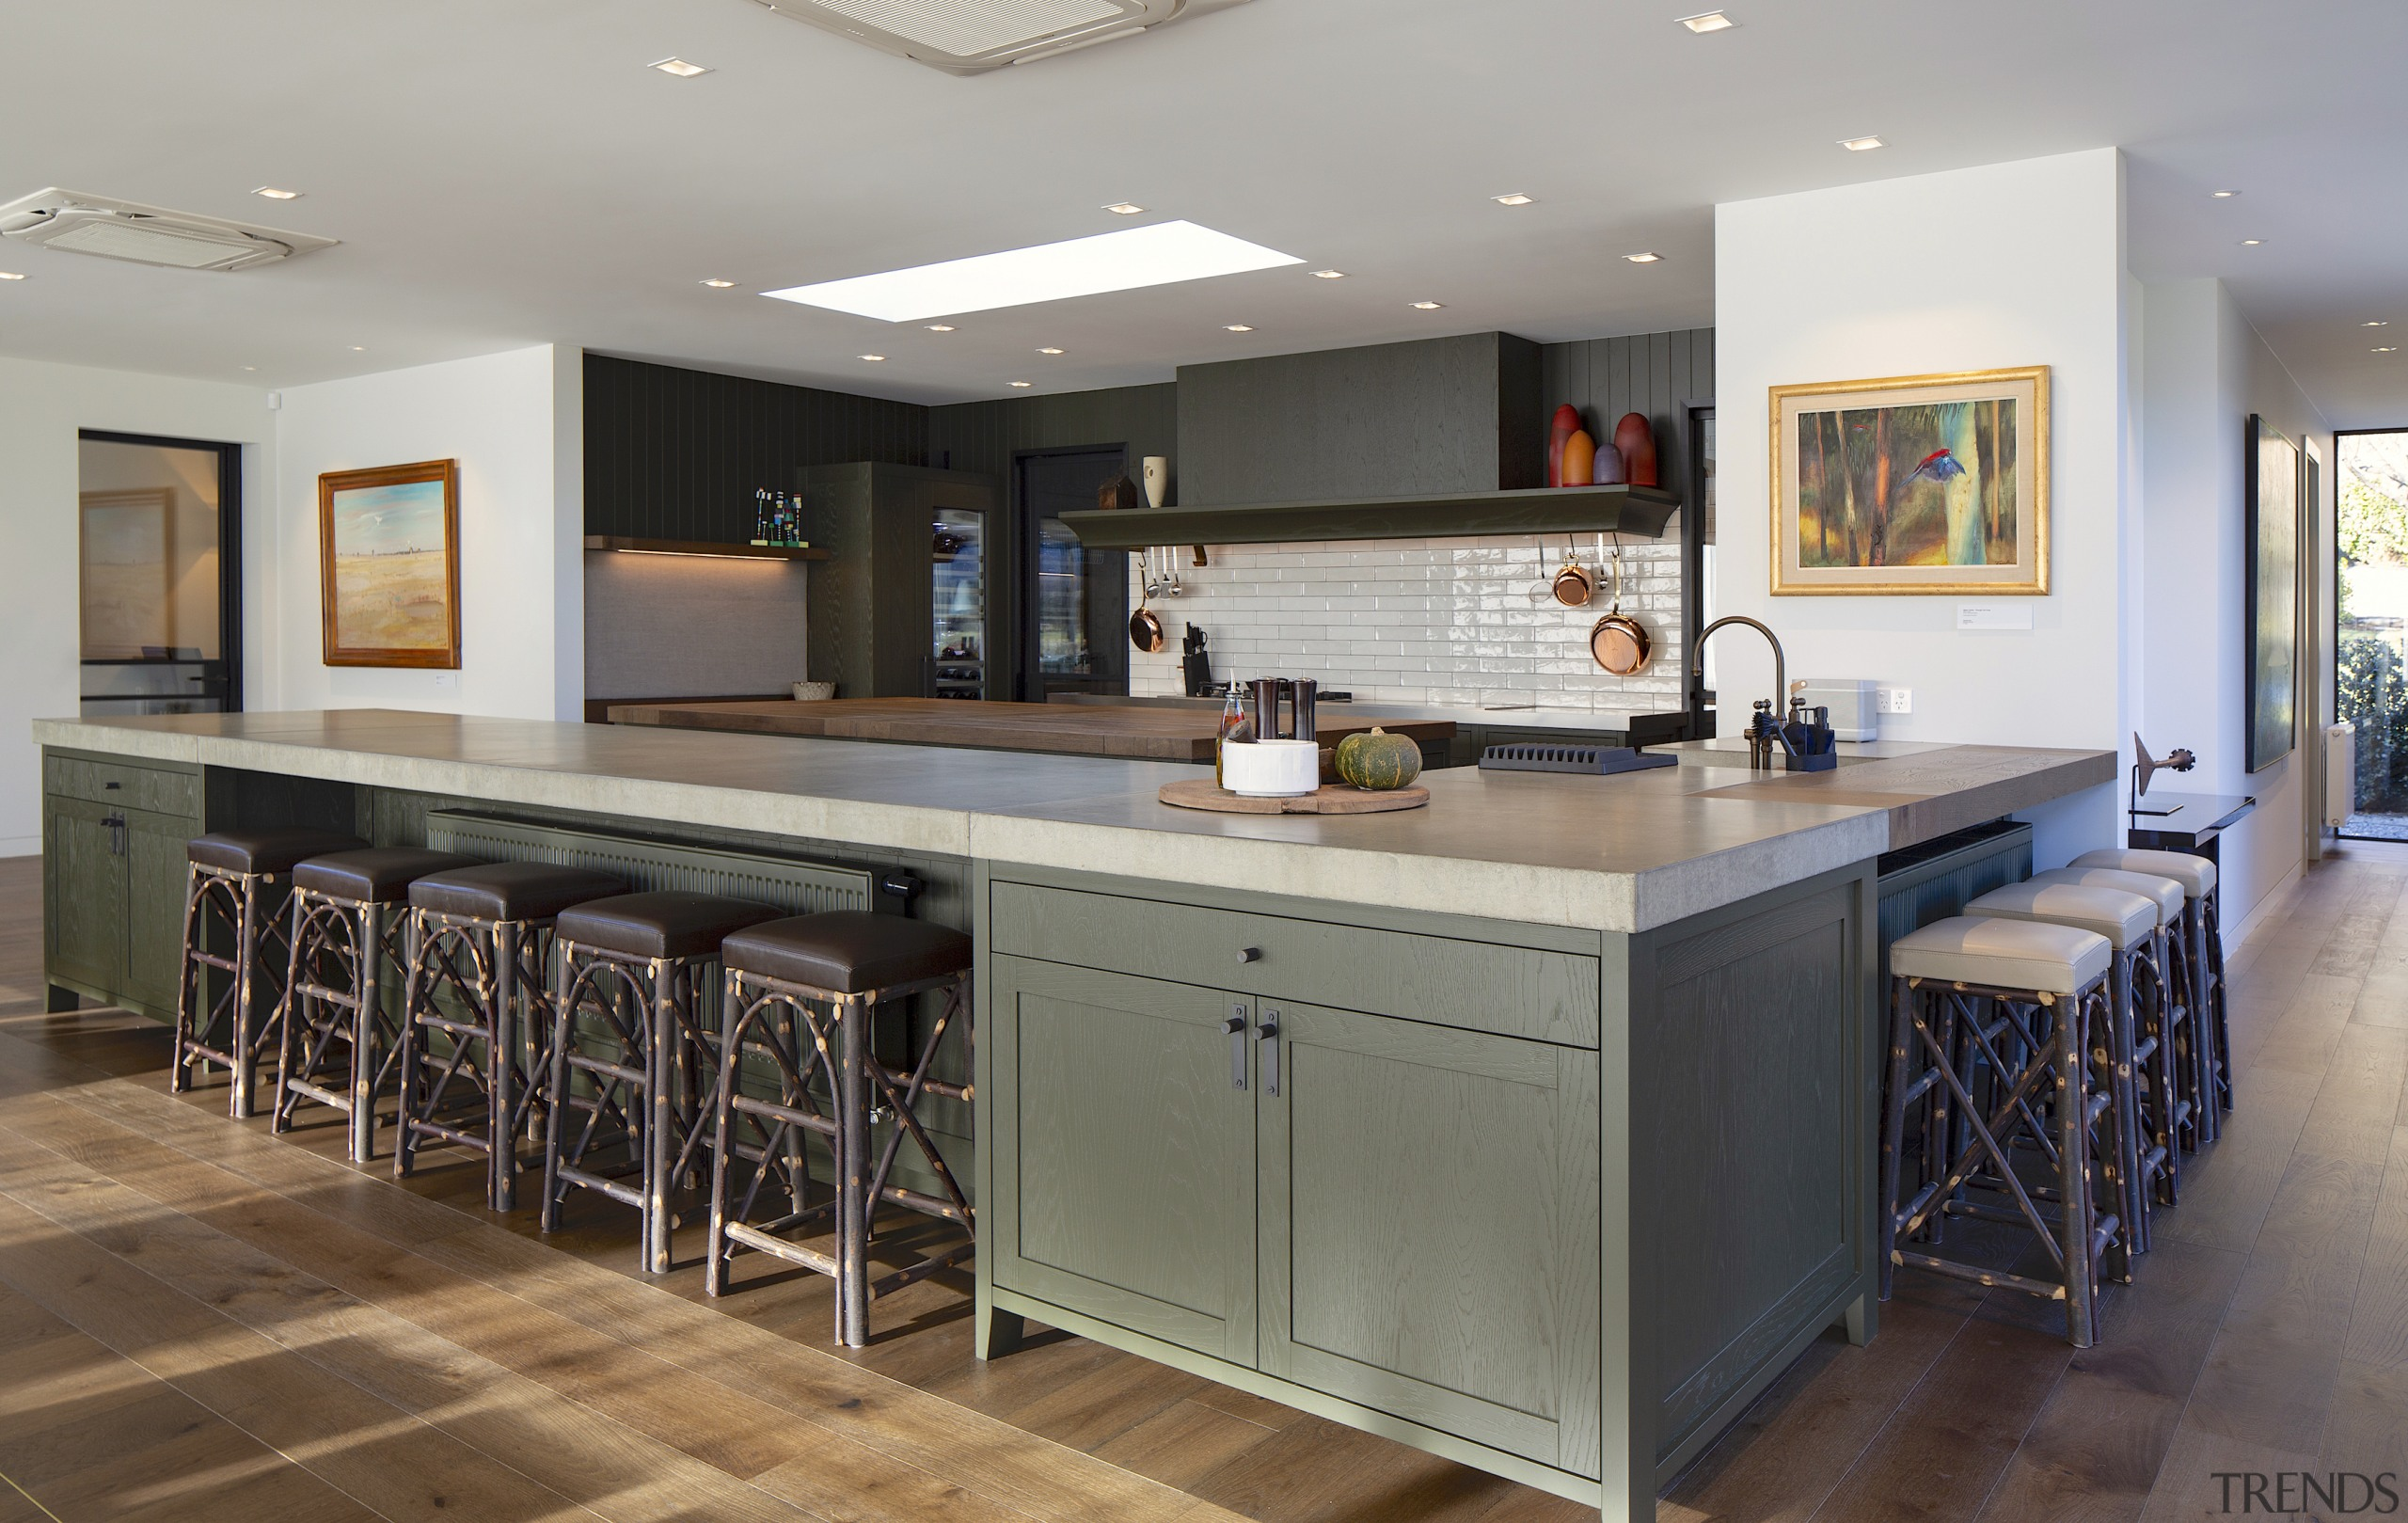 Colours and materials in this large farmhouse kitchen